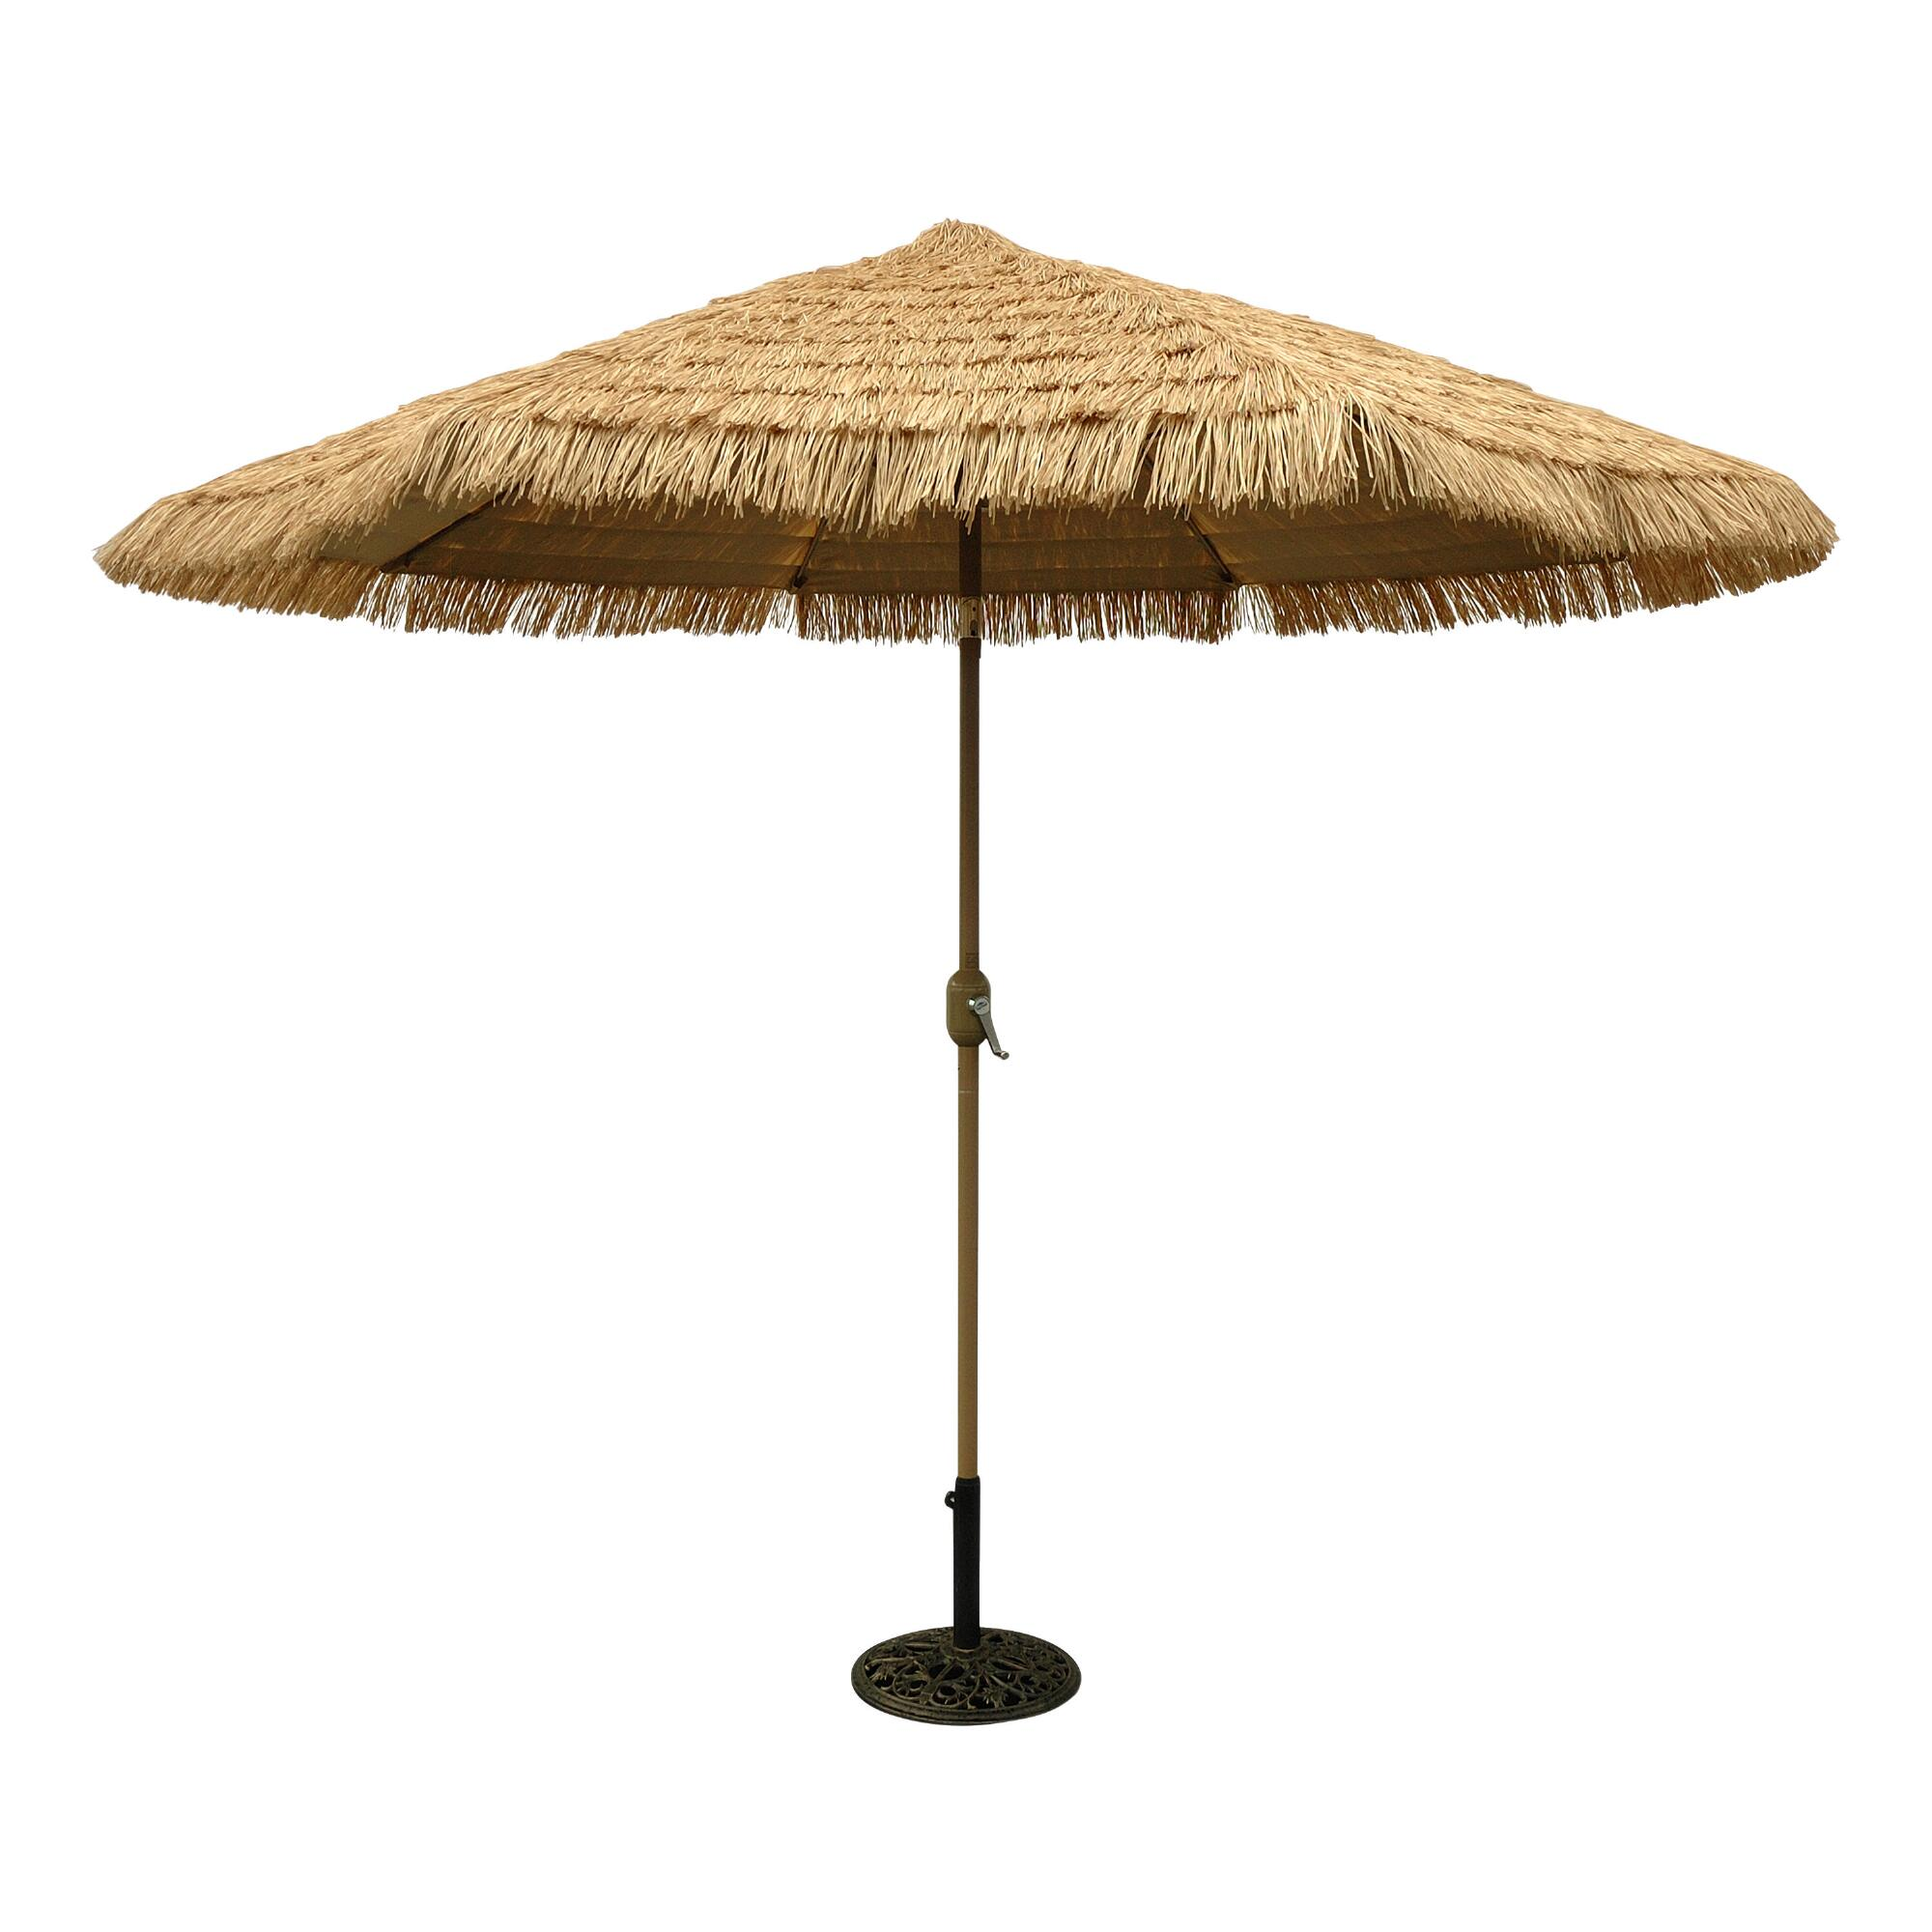 9-ft. Thatched Market Umbrella: Natural - Fabric by World Market